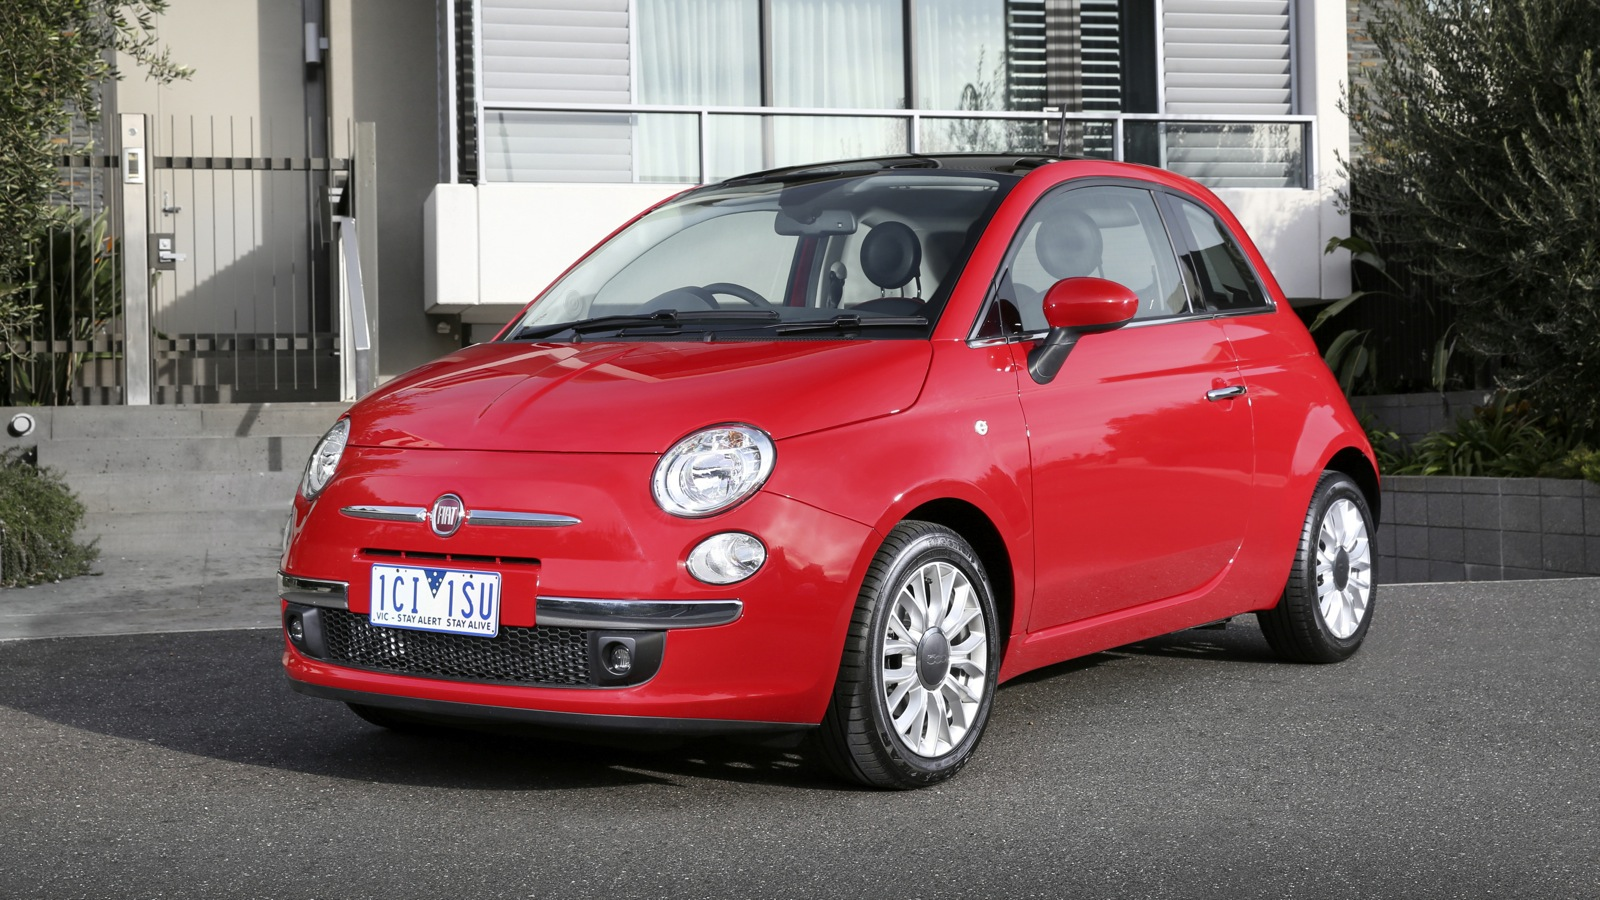 2015 fiat 500 pricing and specifications photos 1 of 35. Black Bedroom Furniture Sets. Home Design Ideas